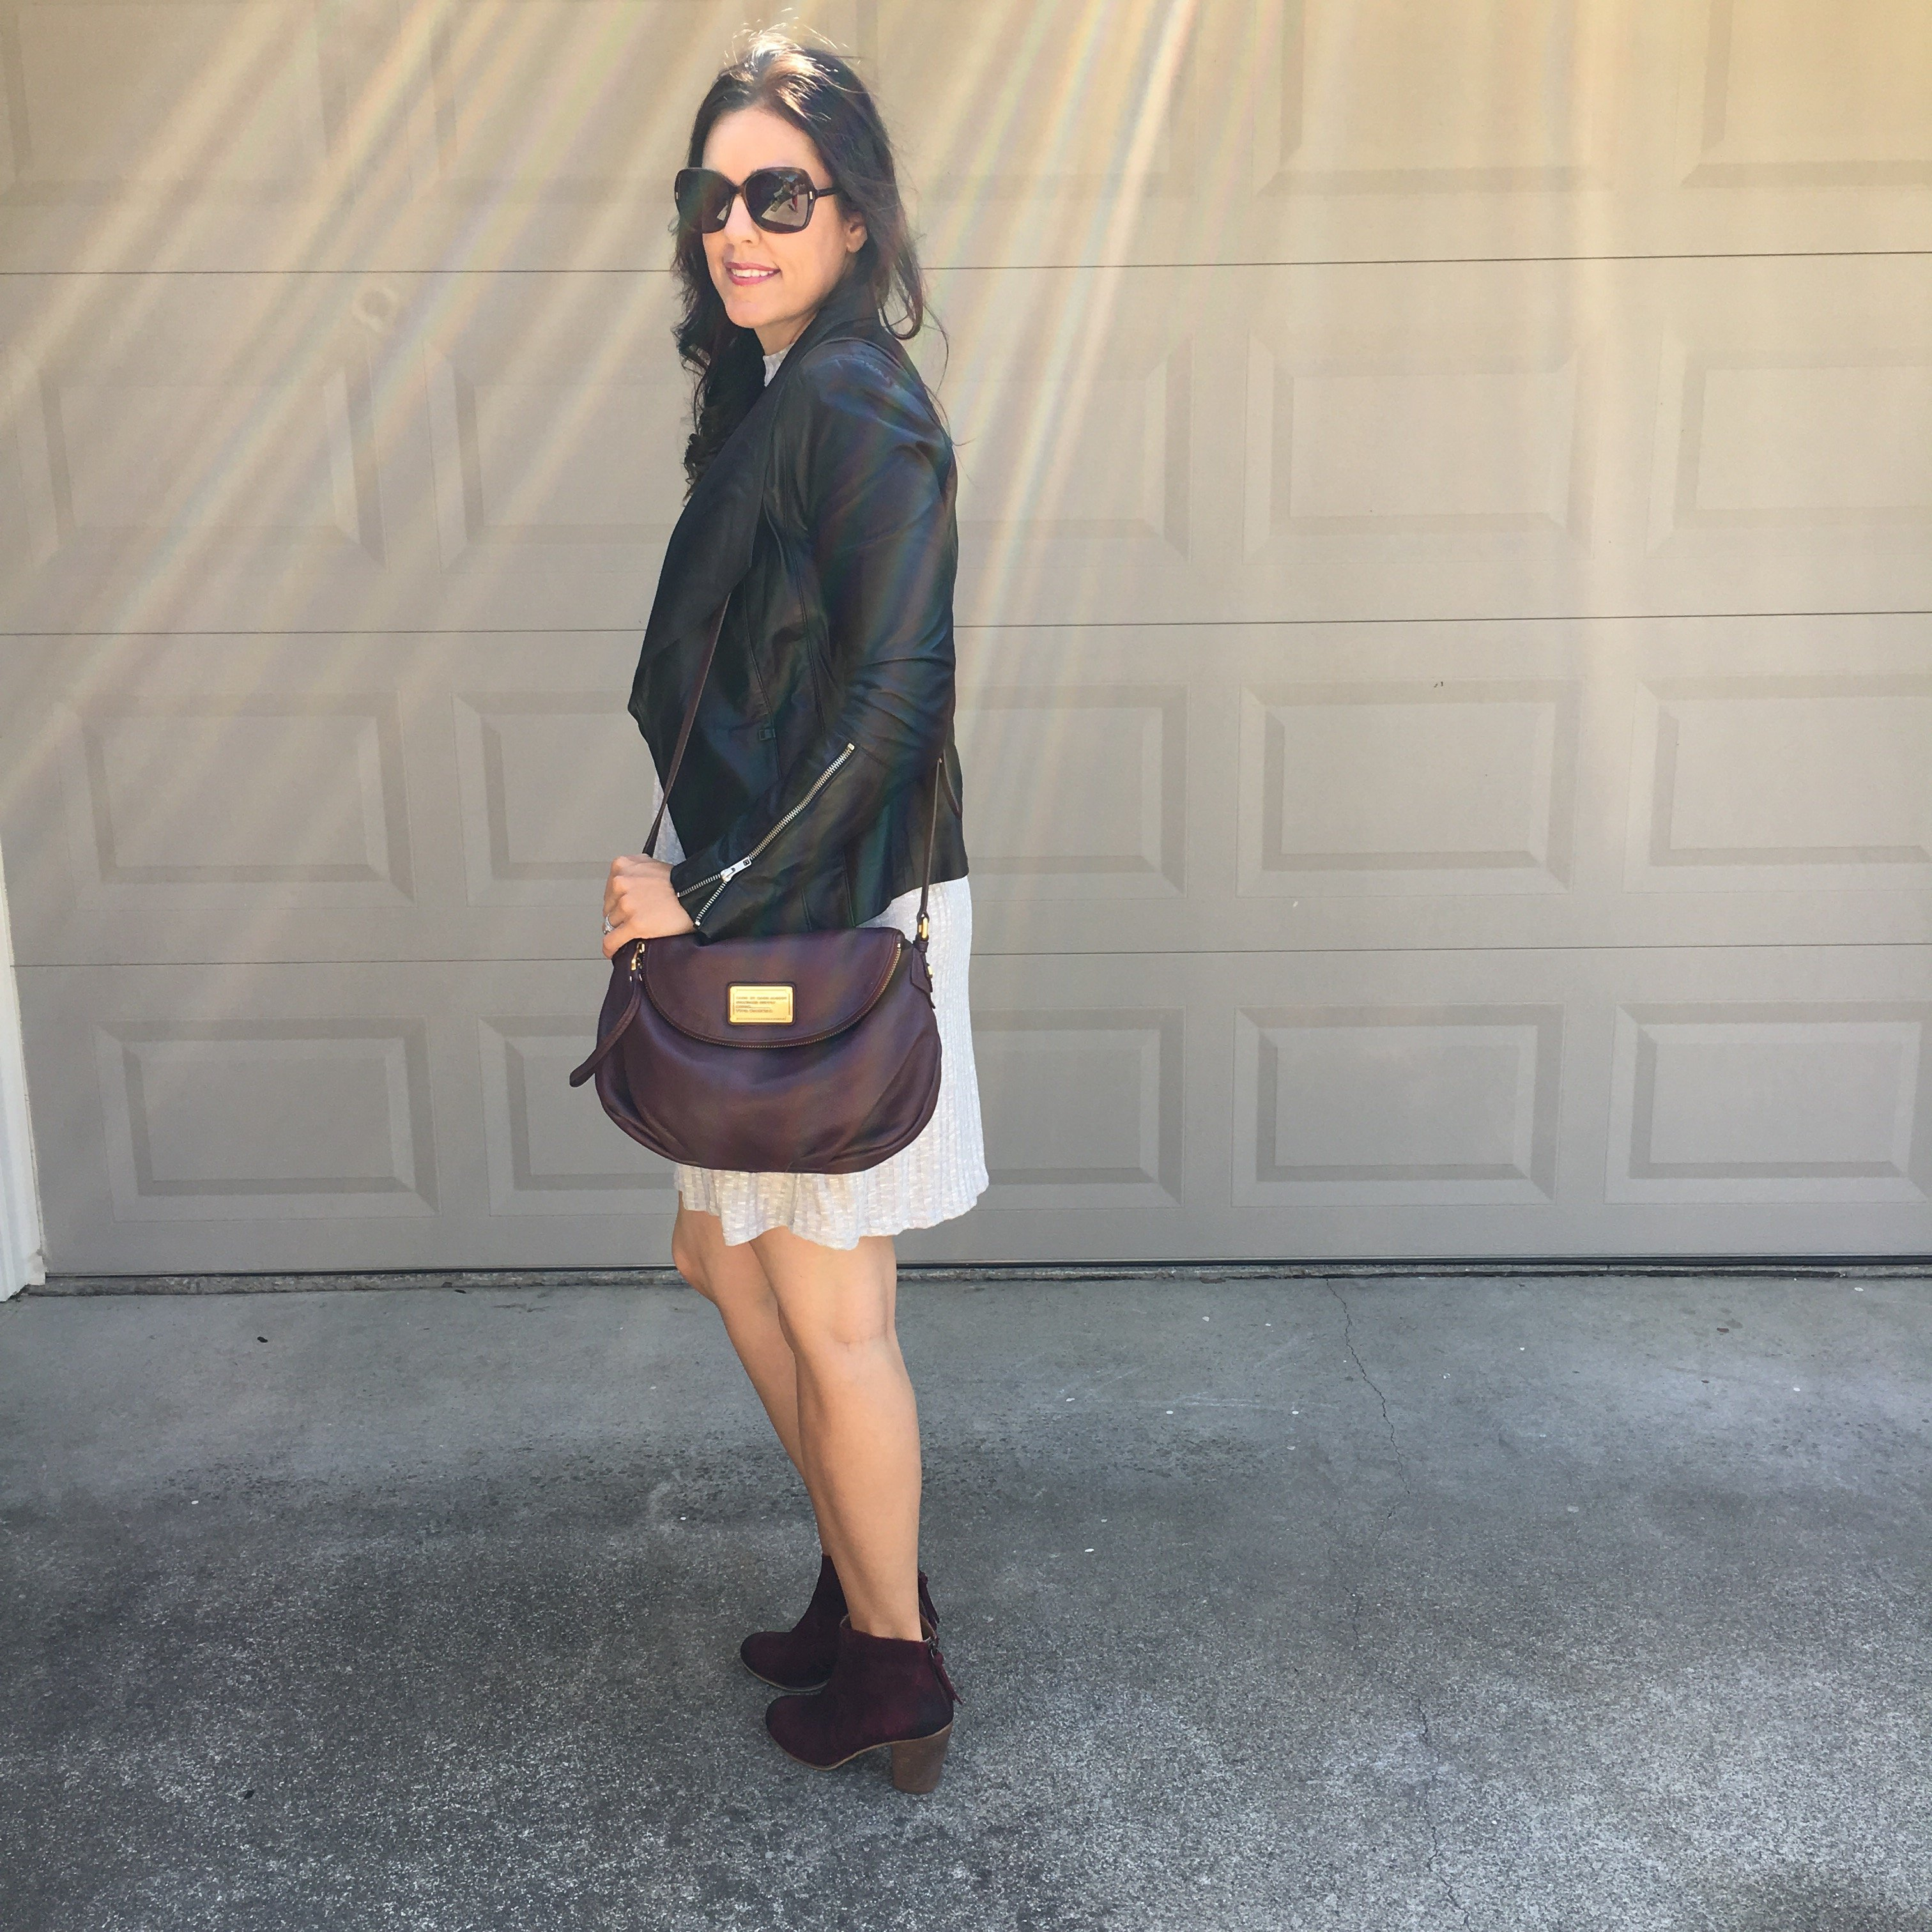 How to style a dress for fall | red booties | fall and winter style ideas | fall fashion tips | cool weather fashion